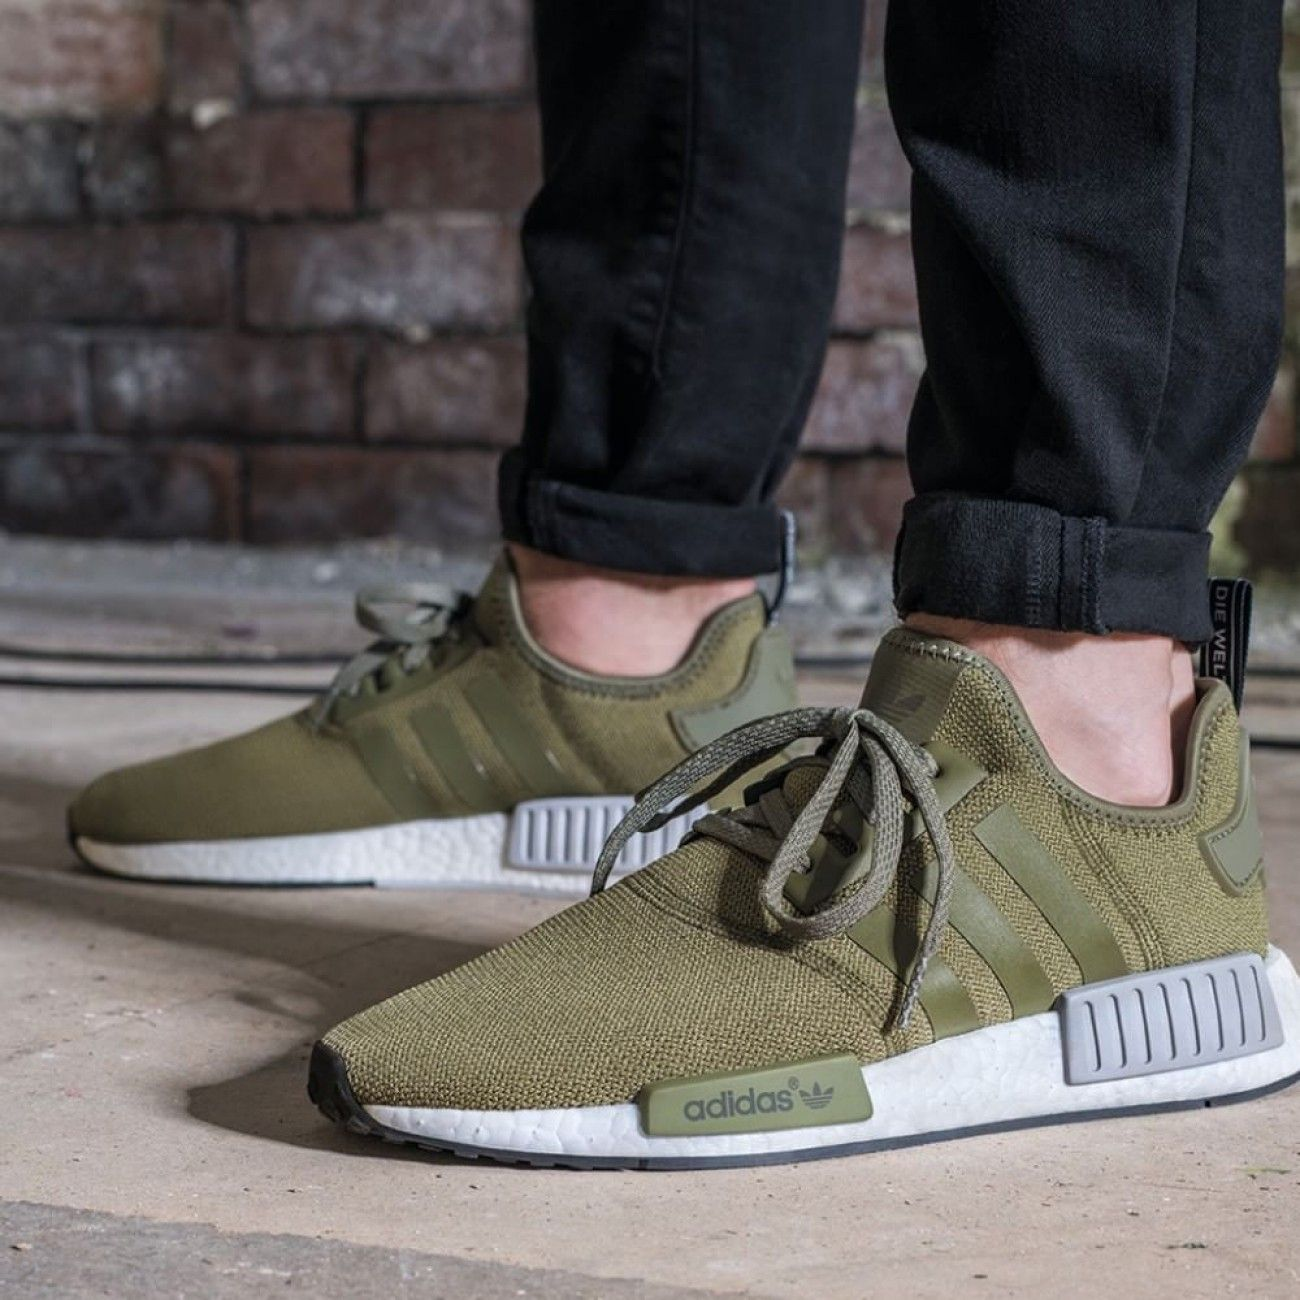 1e7f2ae90ca40 ... r1 womens primeknit utility green shoe  adidas nmd olive khaki discount  offer stylish adidas nmd shoes with comfort power sole discount outl